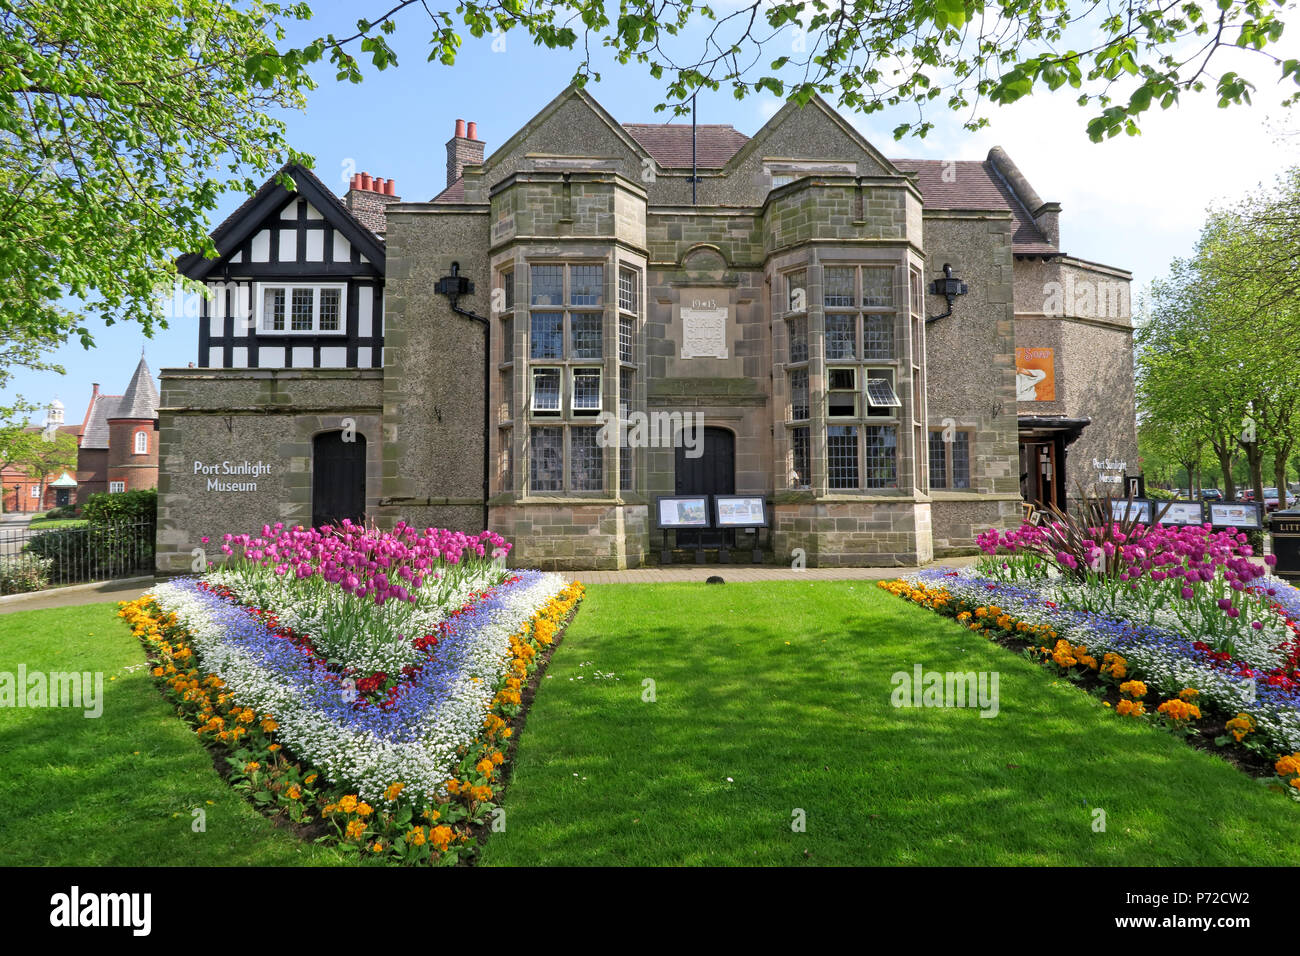 Port Sunlight Museum, Port Sunlight Village, Lower Rd, Bebington, Wirral, North West England, UK,  CH62 5EQ - Stock Image